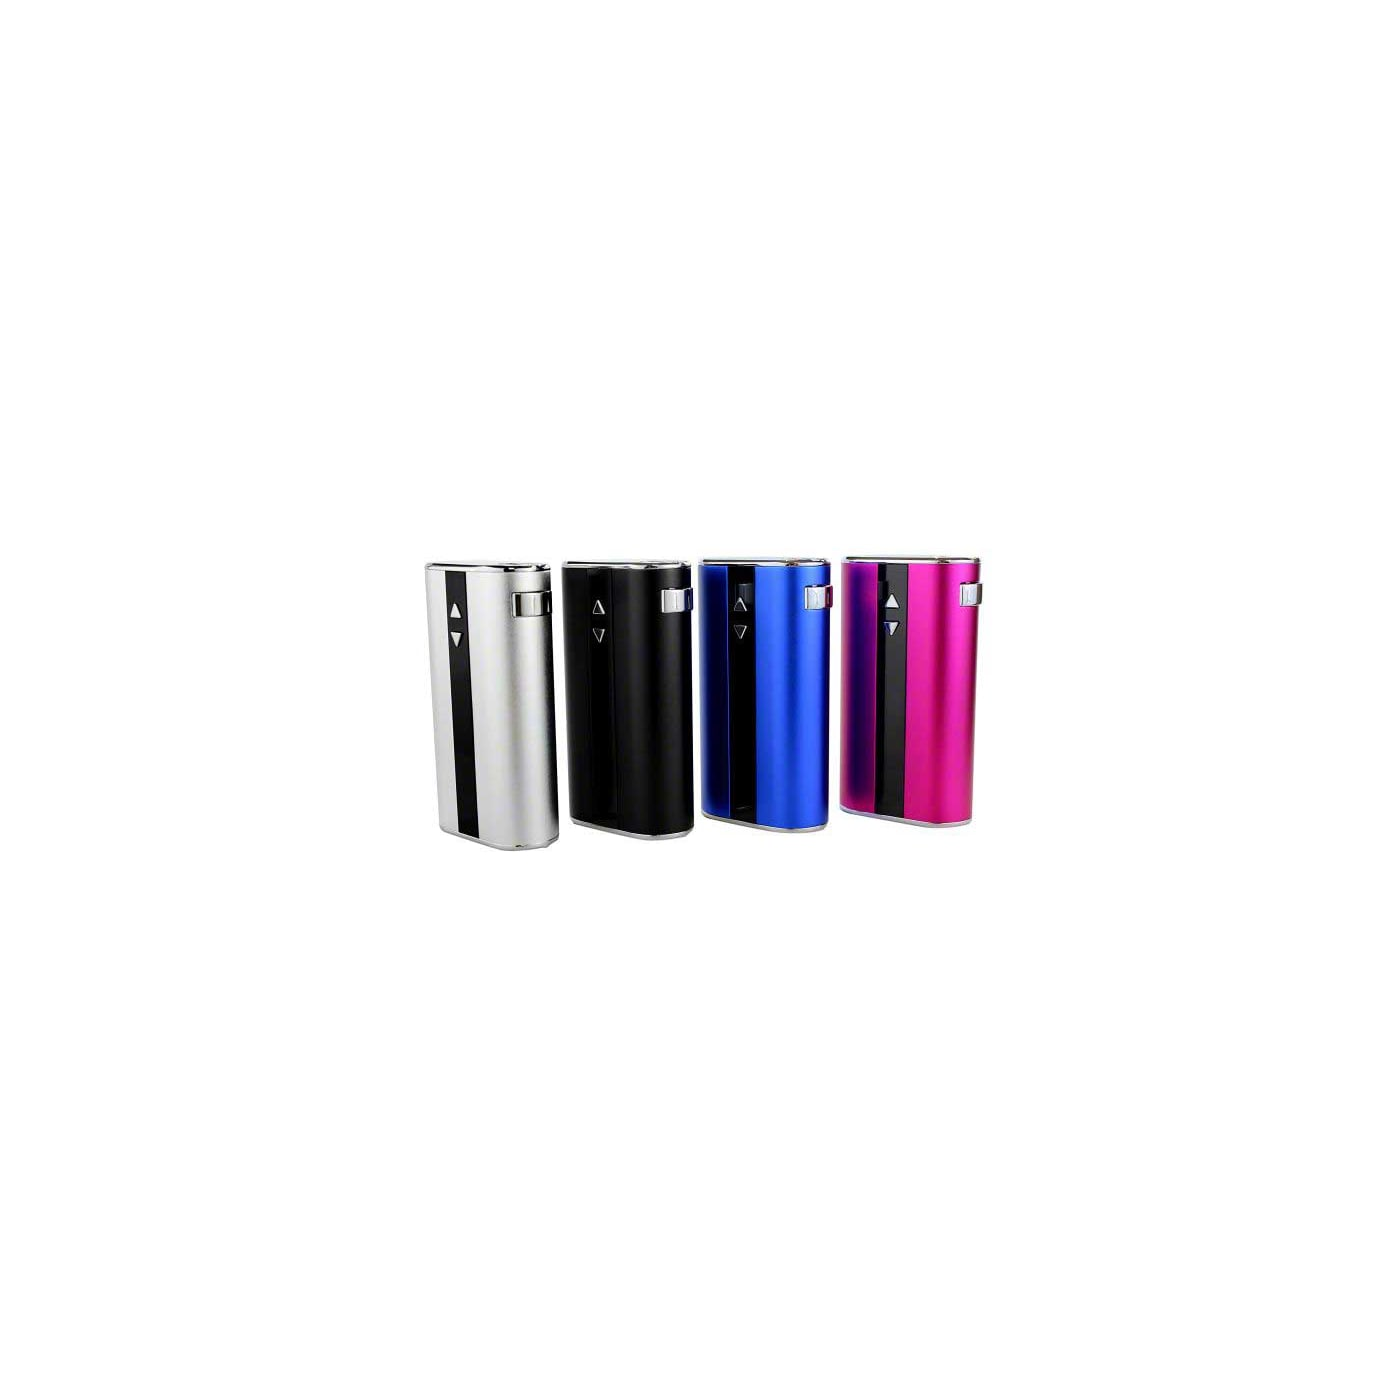 Eleaf iStick 50W Colors